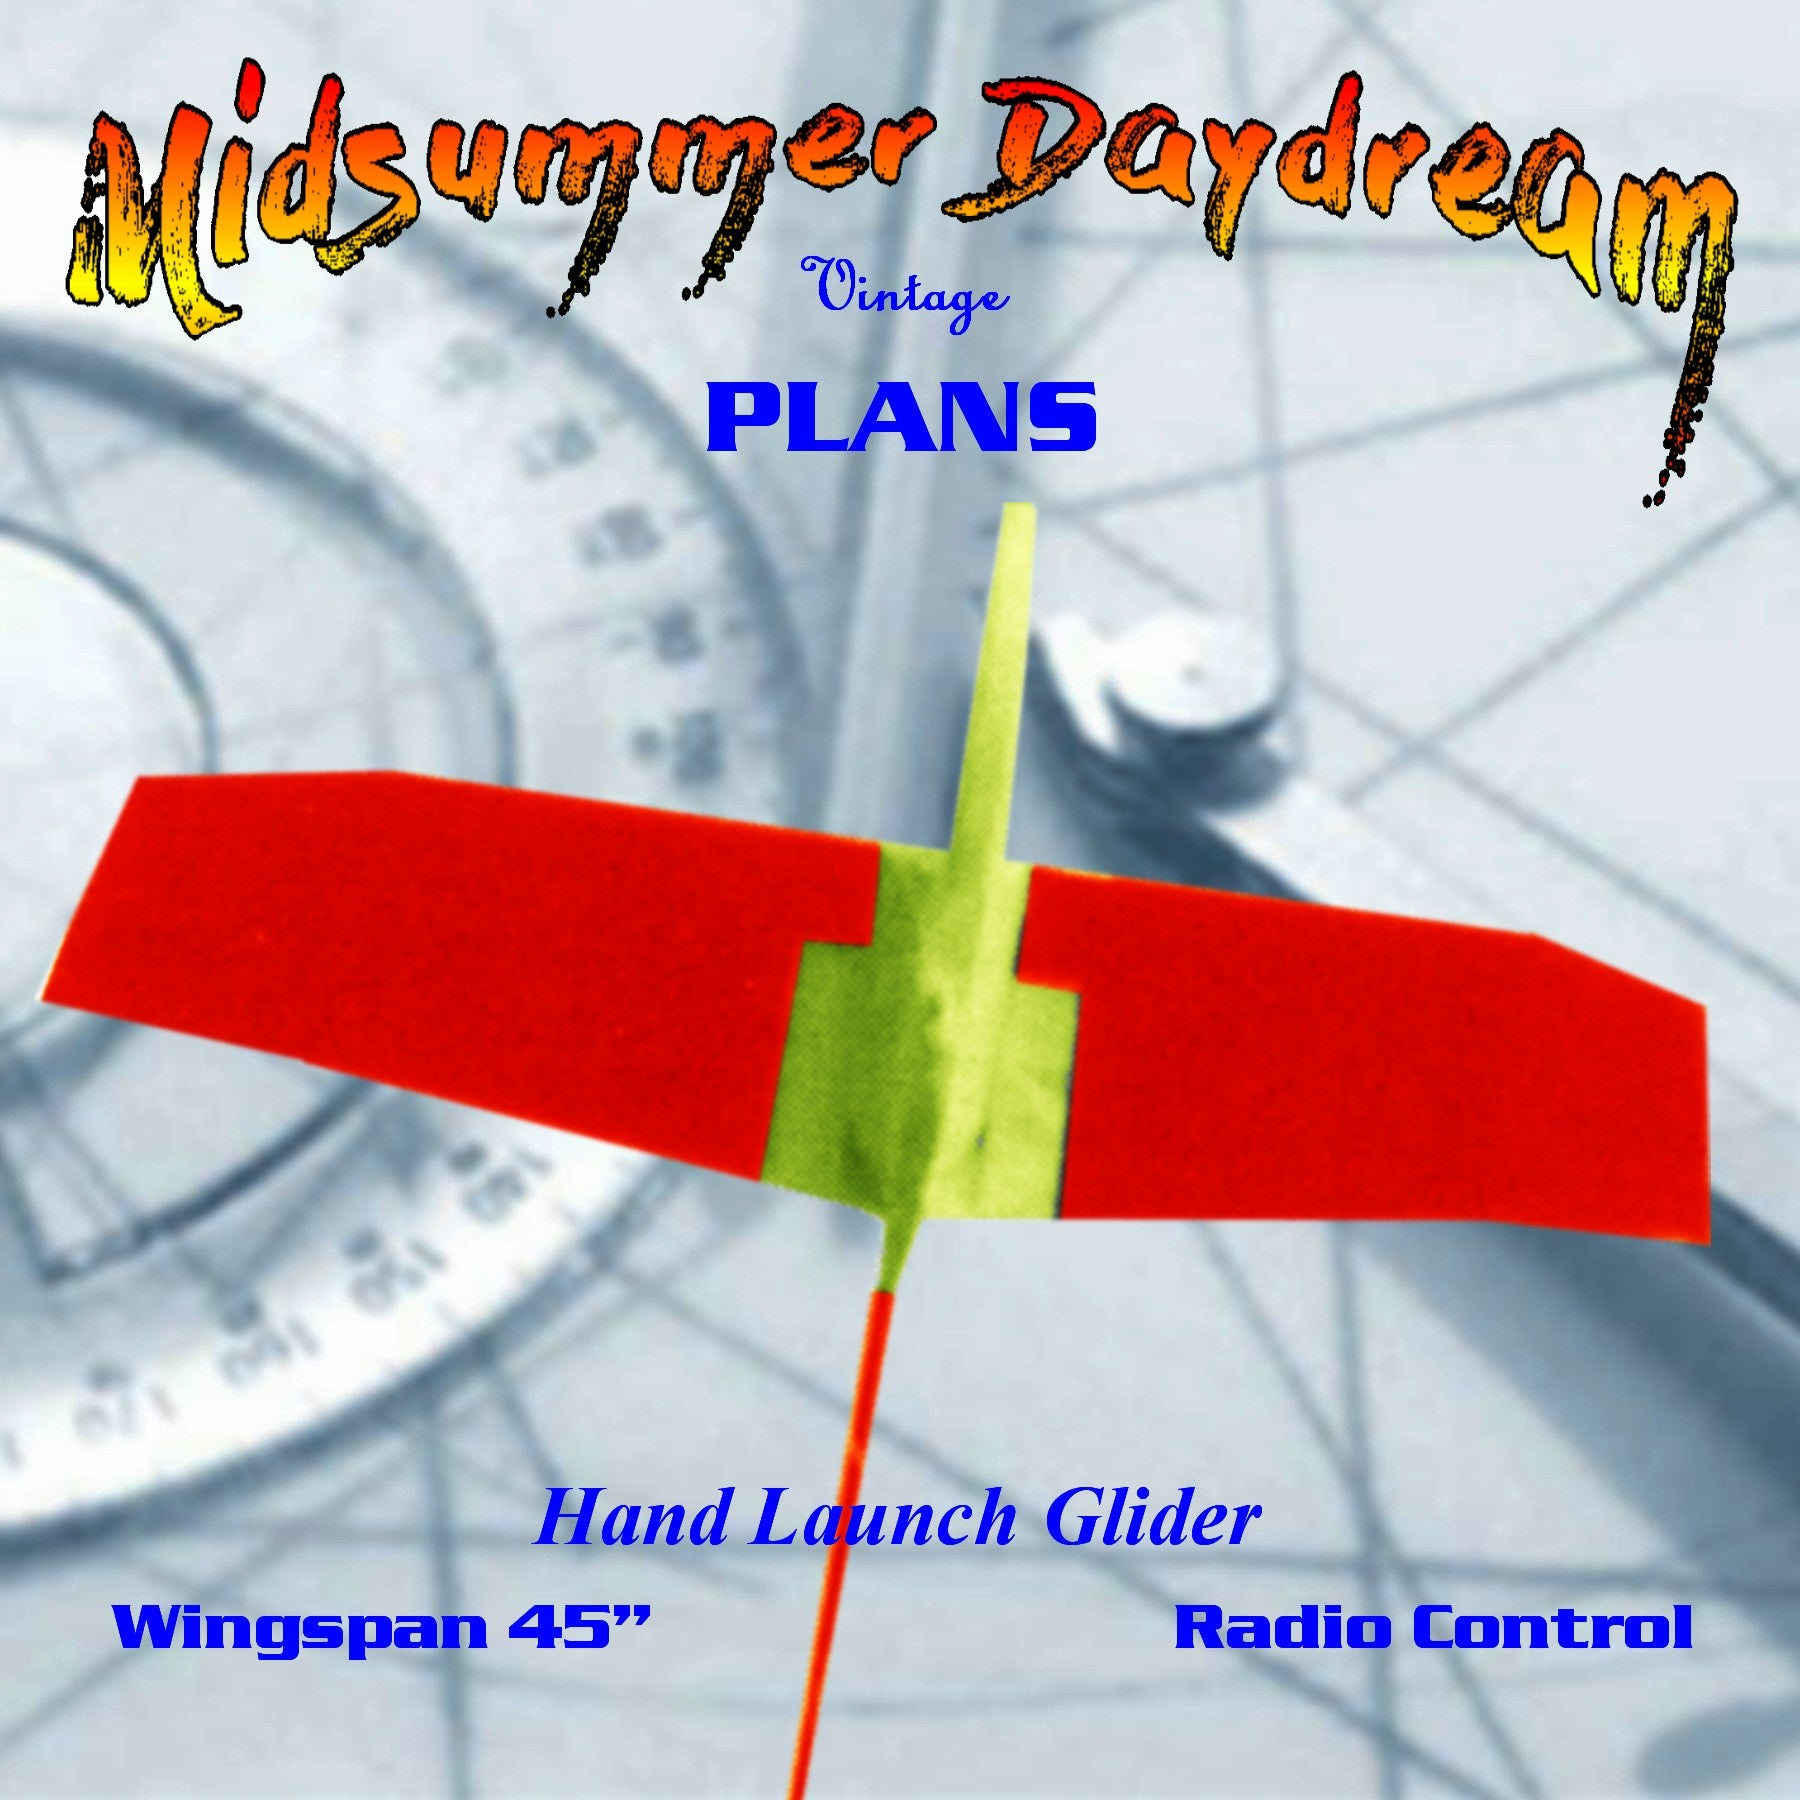 "Full Size Printed Plan HAND LAUNCH GLIDER 45"" W/S for Radio control  is easy to build;"